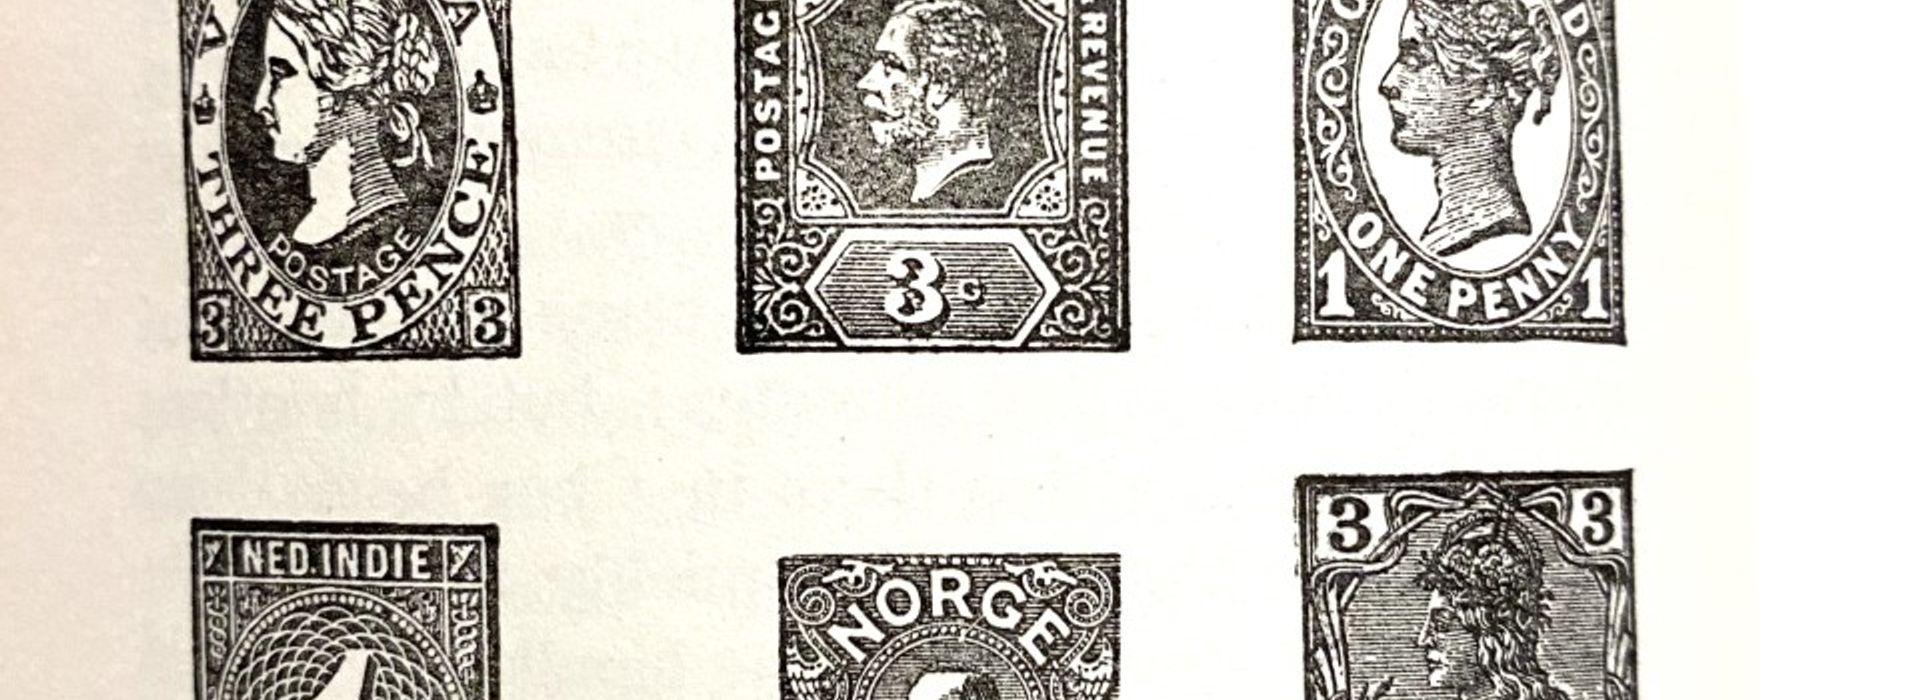 forgeries and bogus stamps